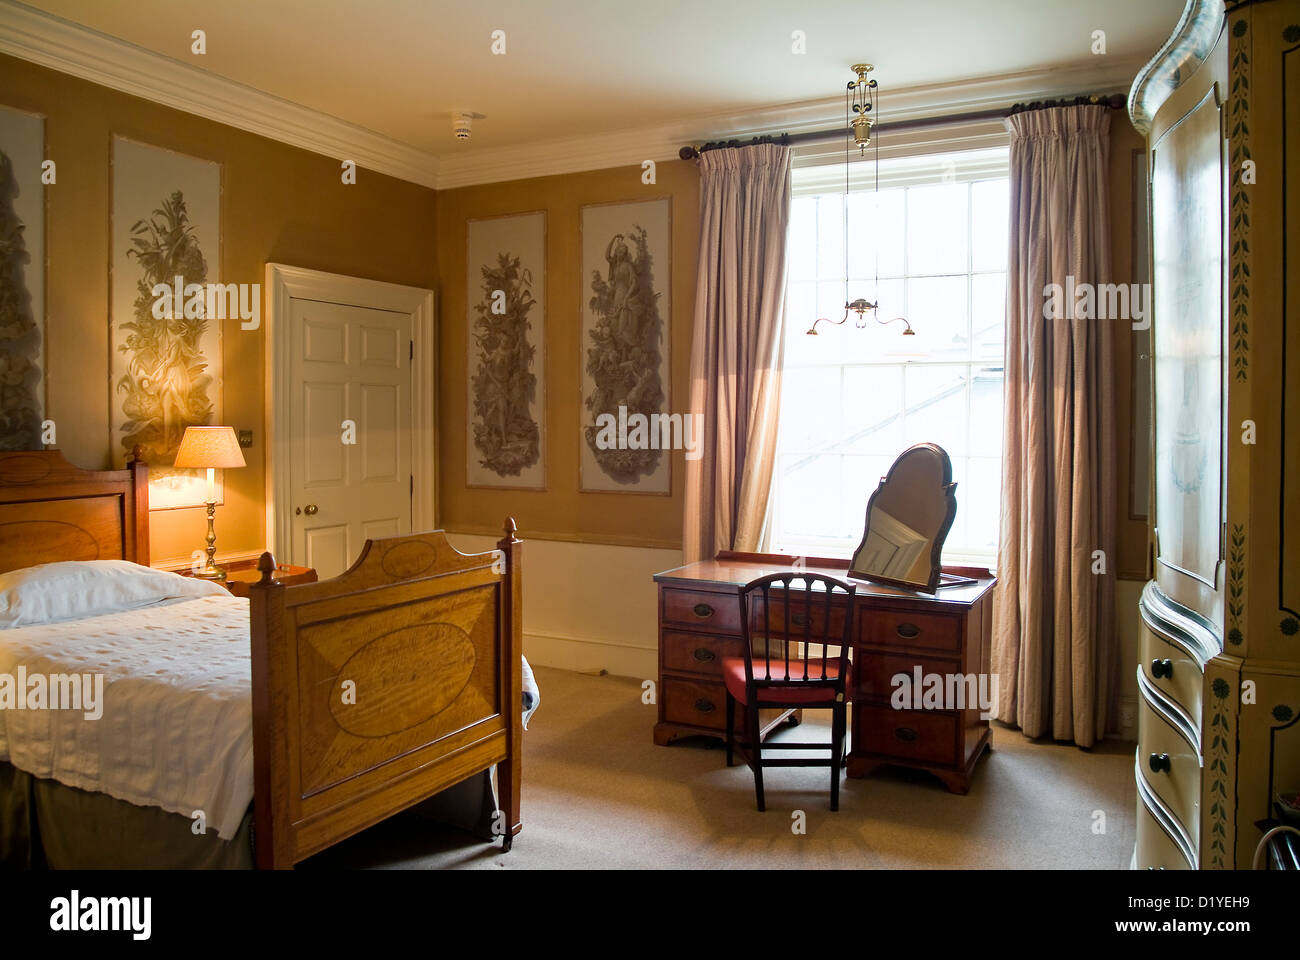 Guests Bedroom With Original Decor And Fittings At West Dean College,  Chichester, West Sussex, UK